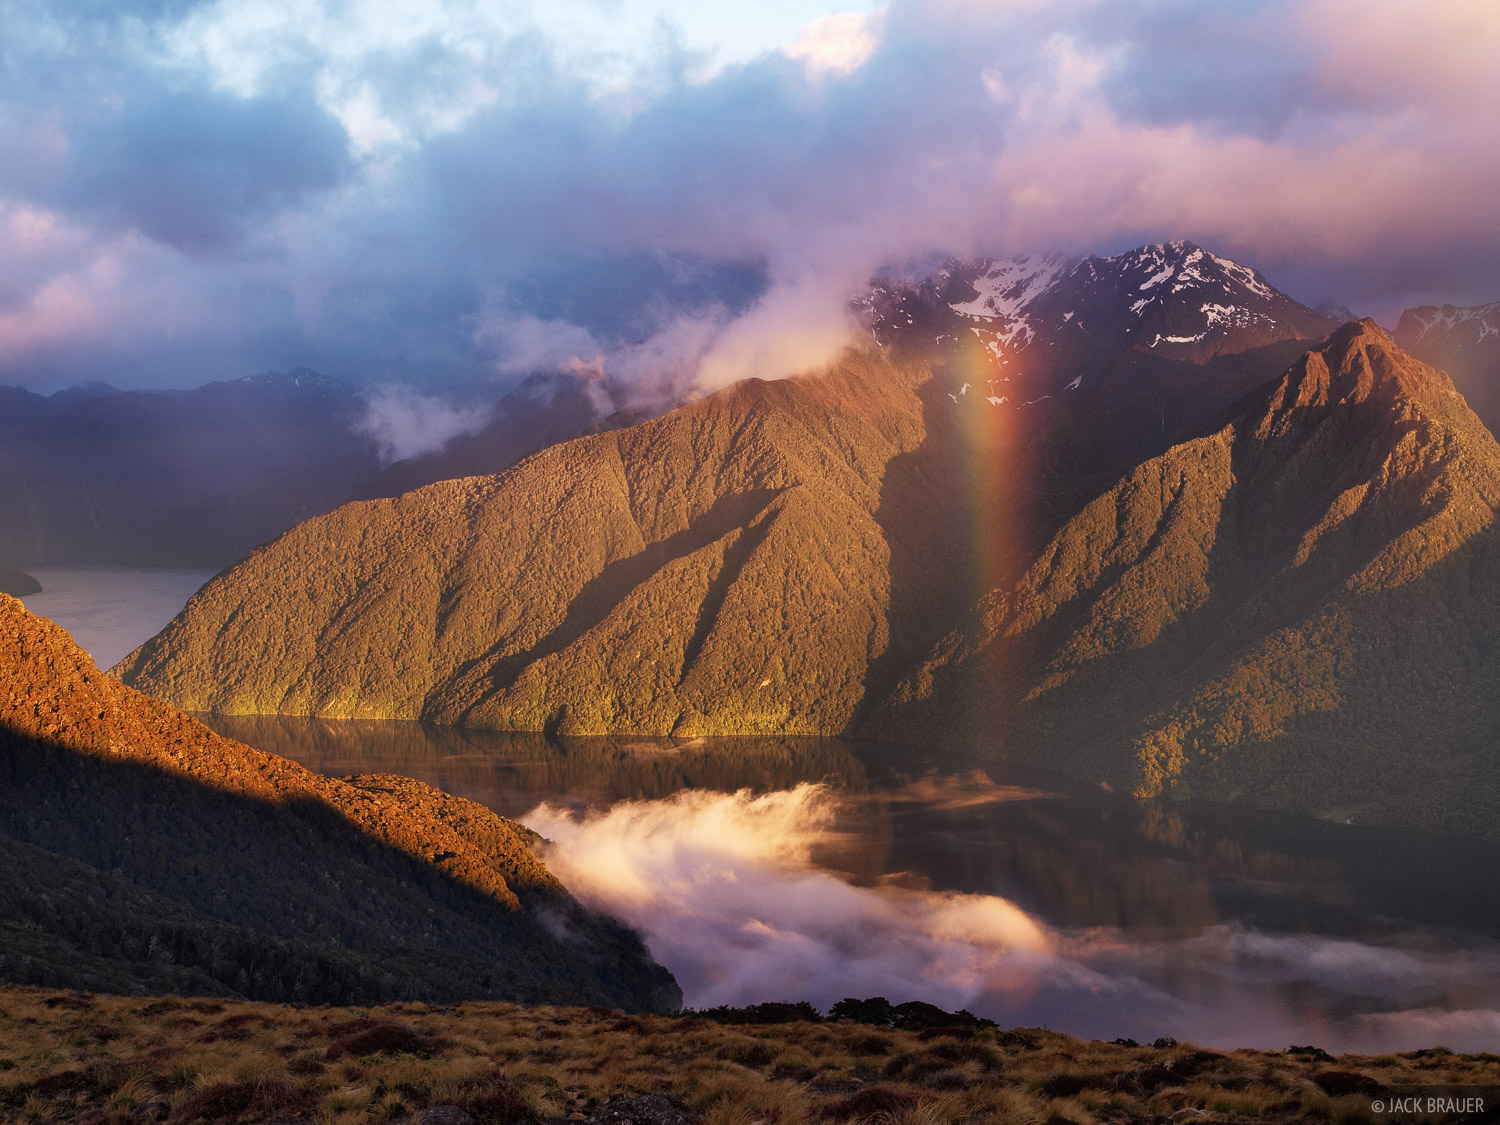 Sunrise rainbow over a fiord arm of Lake Te Anau, with the Murchison Mountains behind, as seen from the Kepler Track.